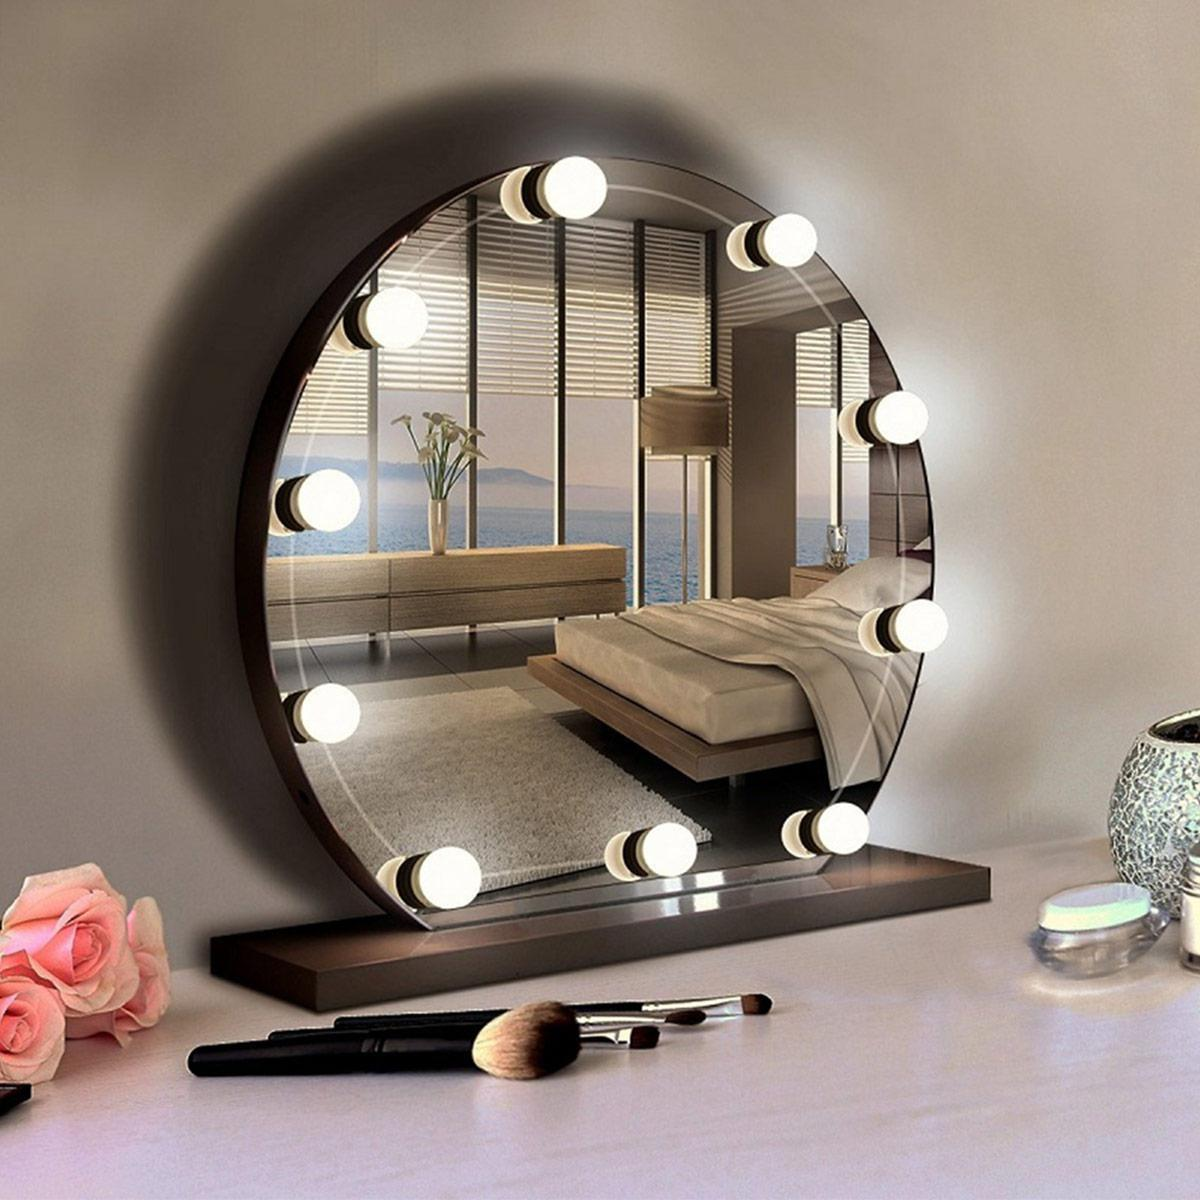 hollywood style led vanity mirror lights usb vanity lights makeup lighting with 10 dimmable light bulbs hollywood style led vanity mirror lights